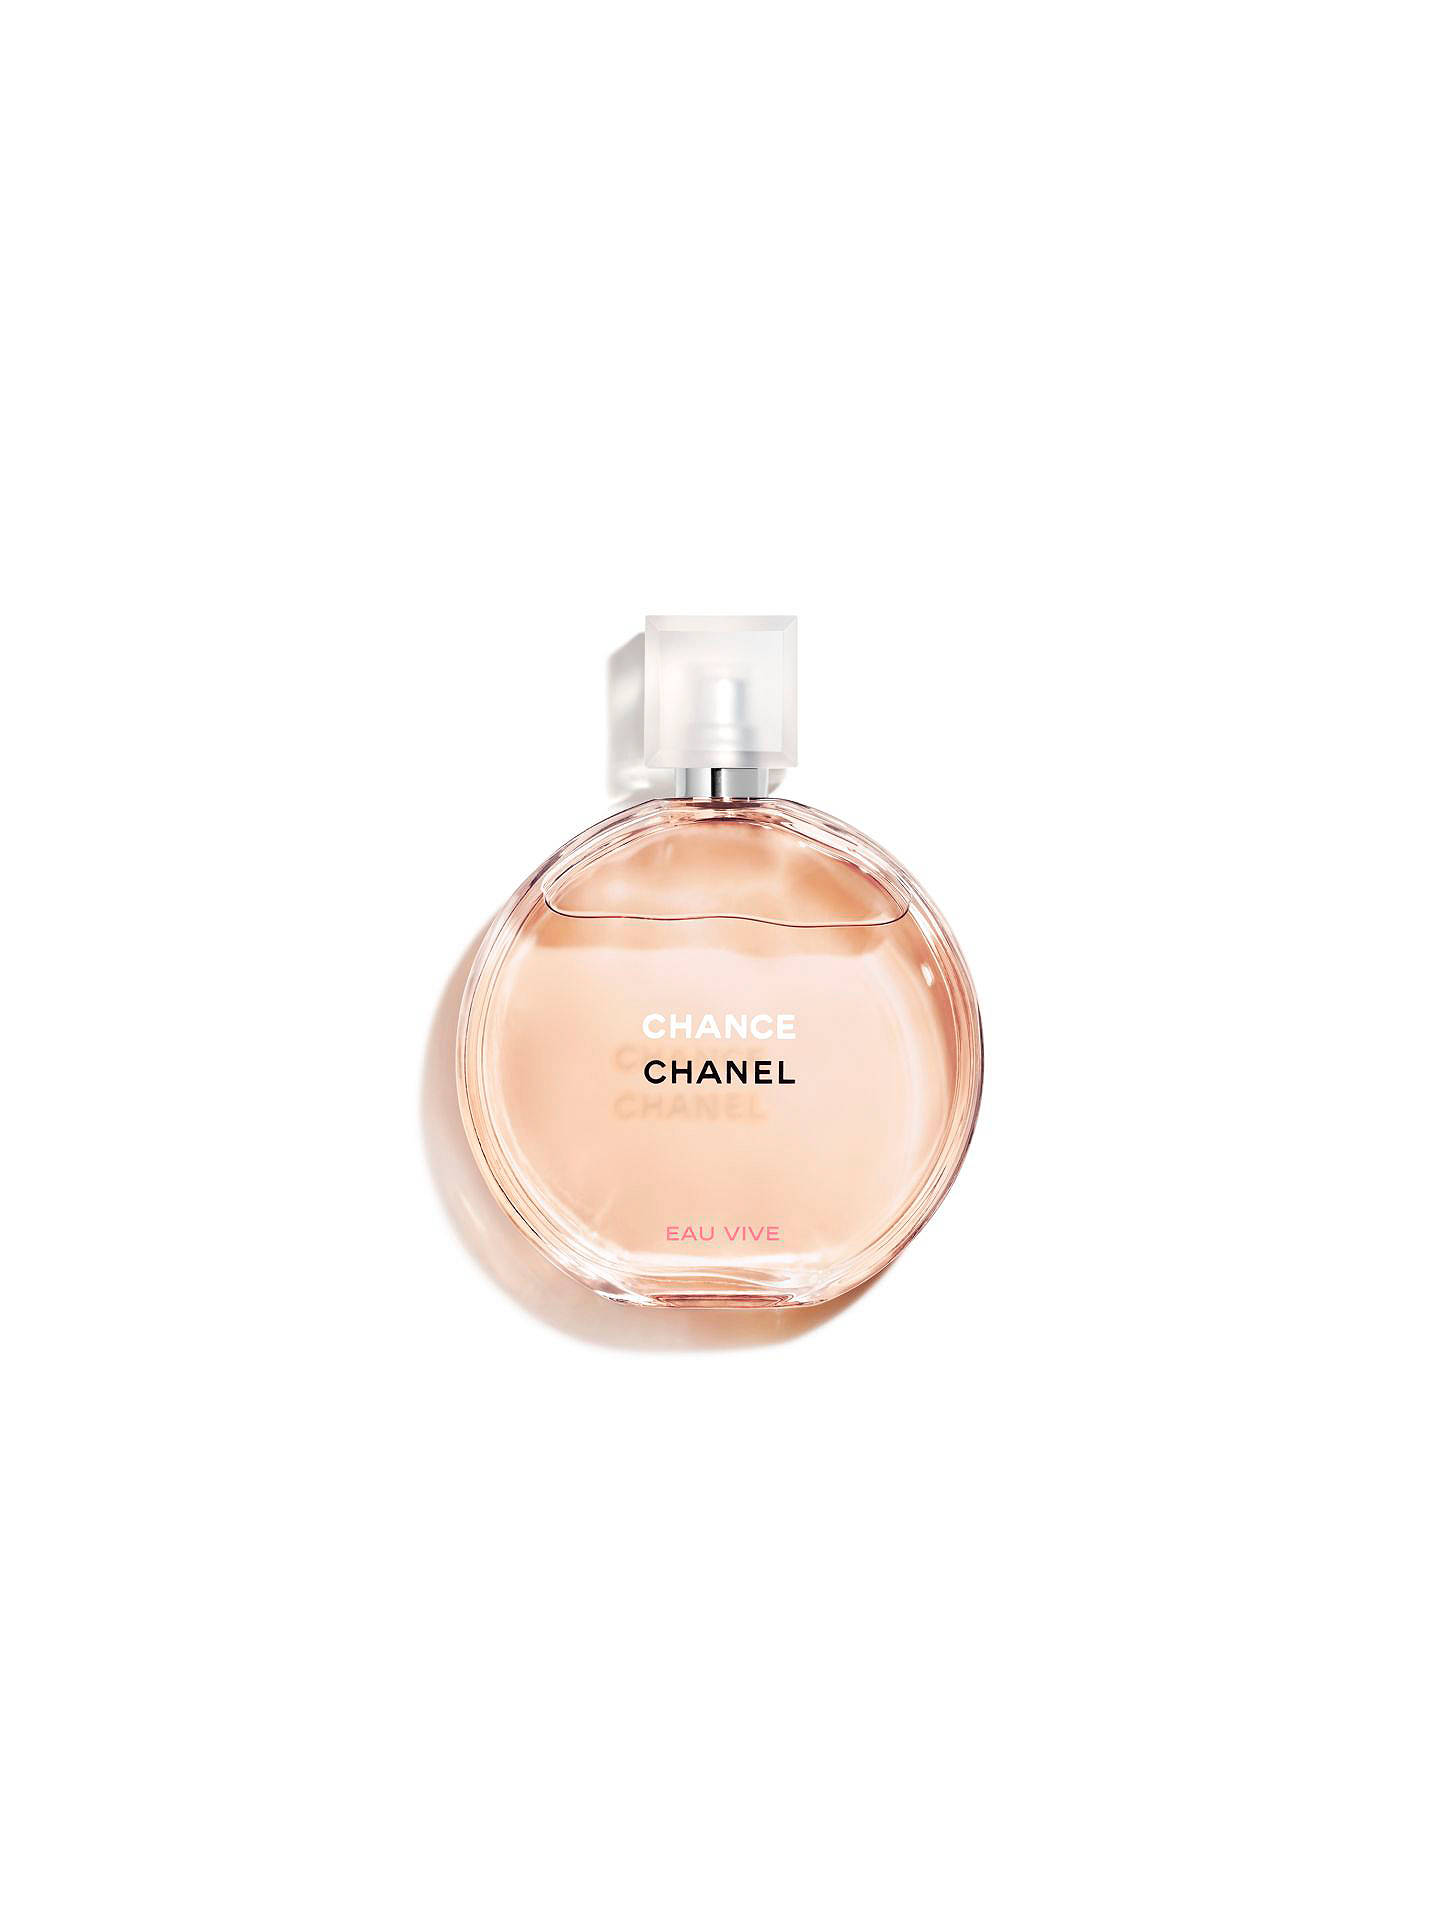 BuyCHANEL CHANCE EAU VIVE Eau de Toilette 50ml Online at johnlewis.com